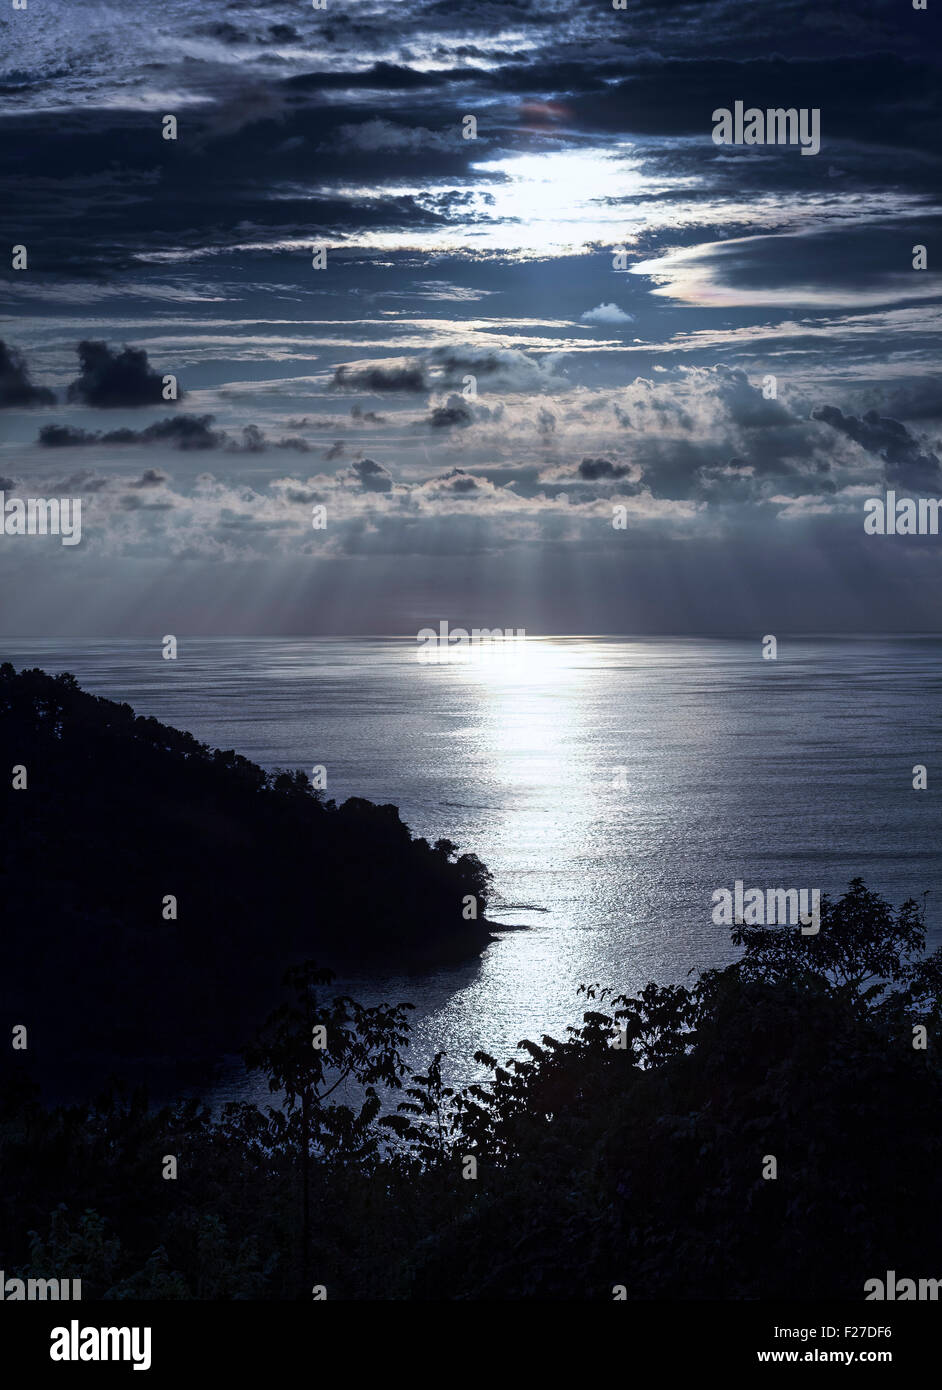 Moonlight on the Pacific, Costa Rica - Stock Image